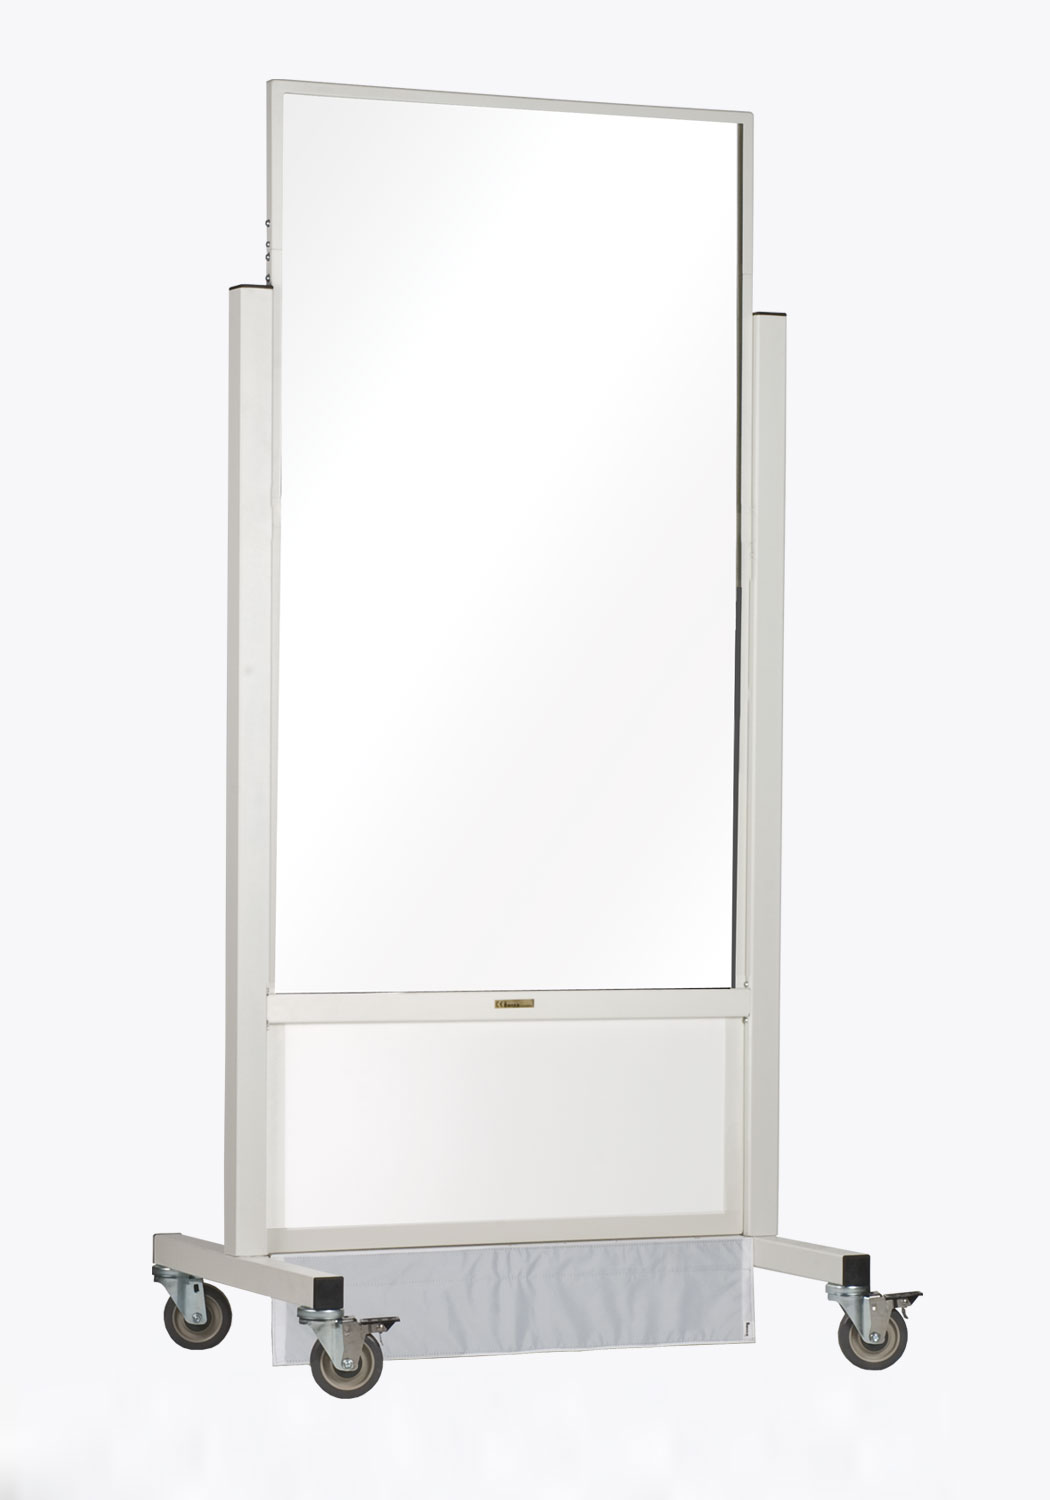 Mid Tall X-ray Mobile Barrier – 683473